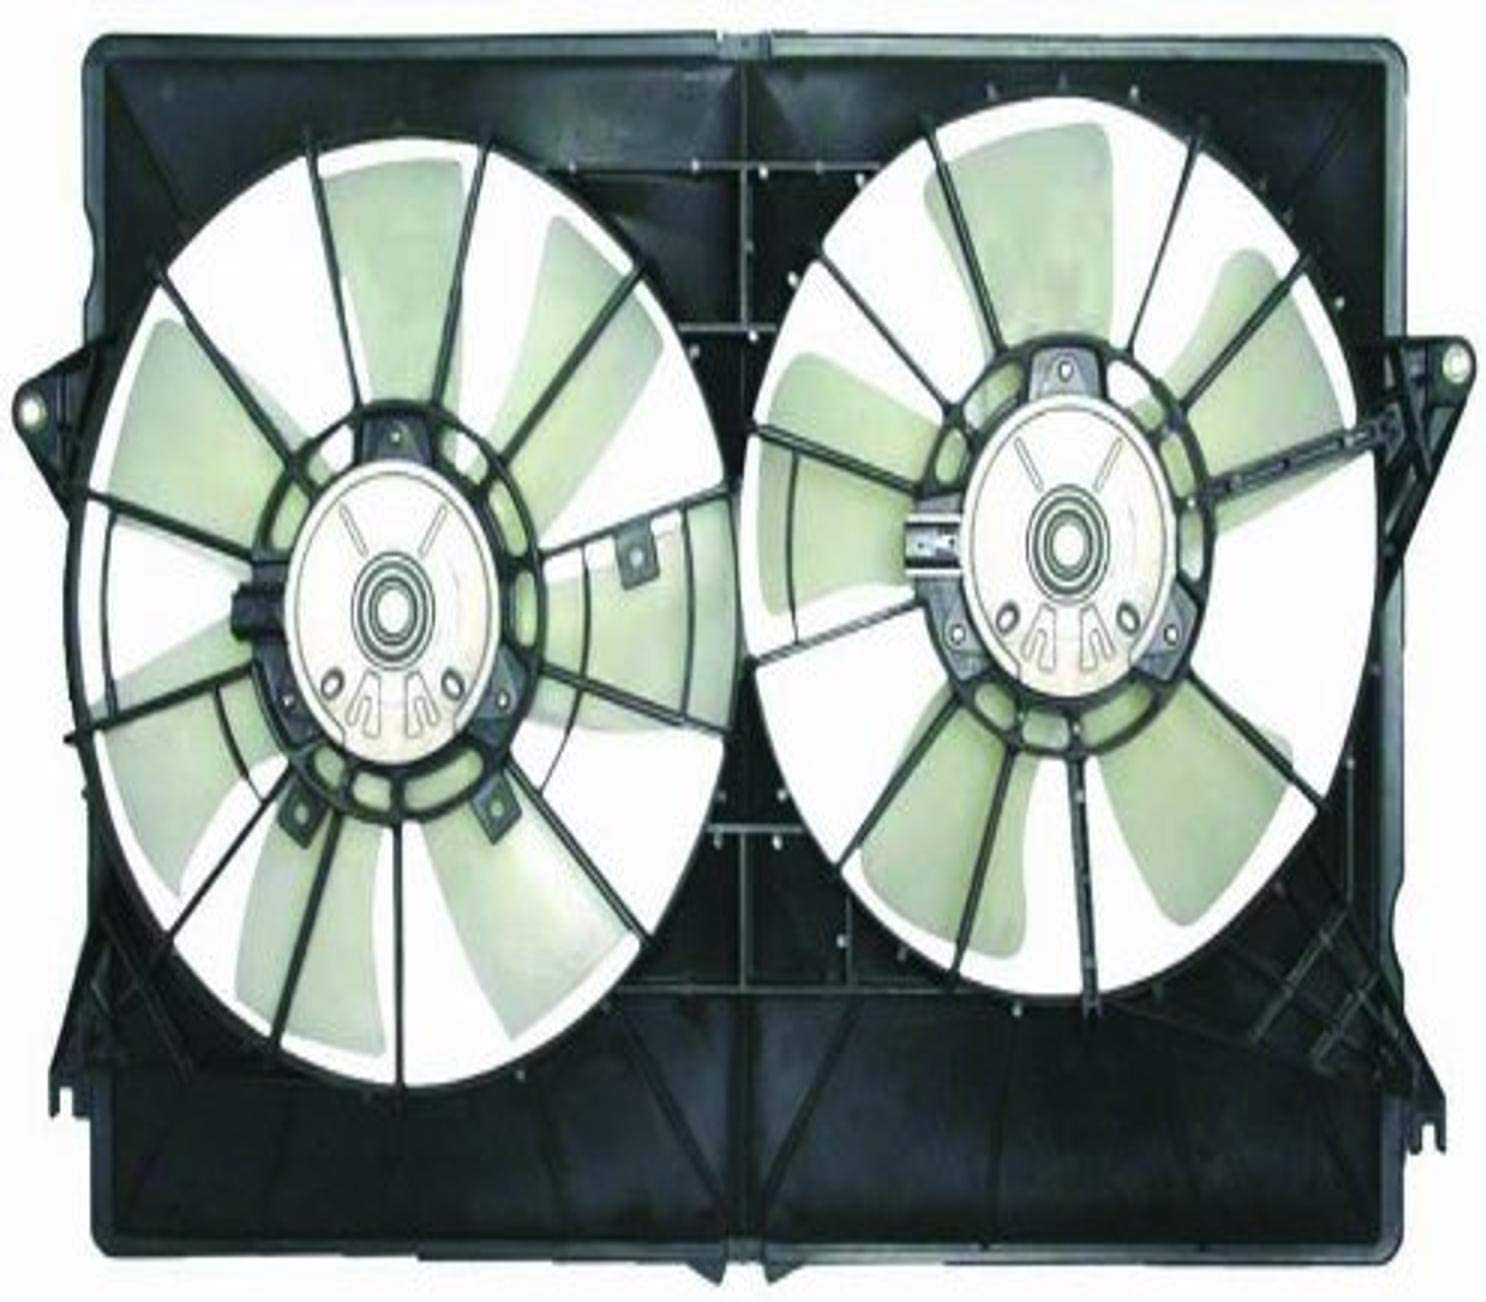 DEPO 333-55009-000 Replacement Engine Cooling Fan Assembly (This product is an aftermarket product. It is not created or sold by the OE car company)